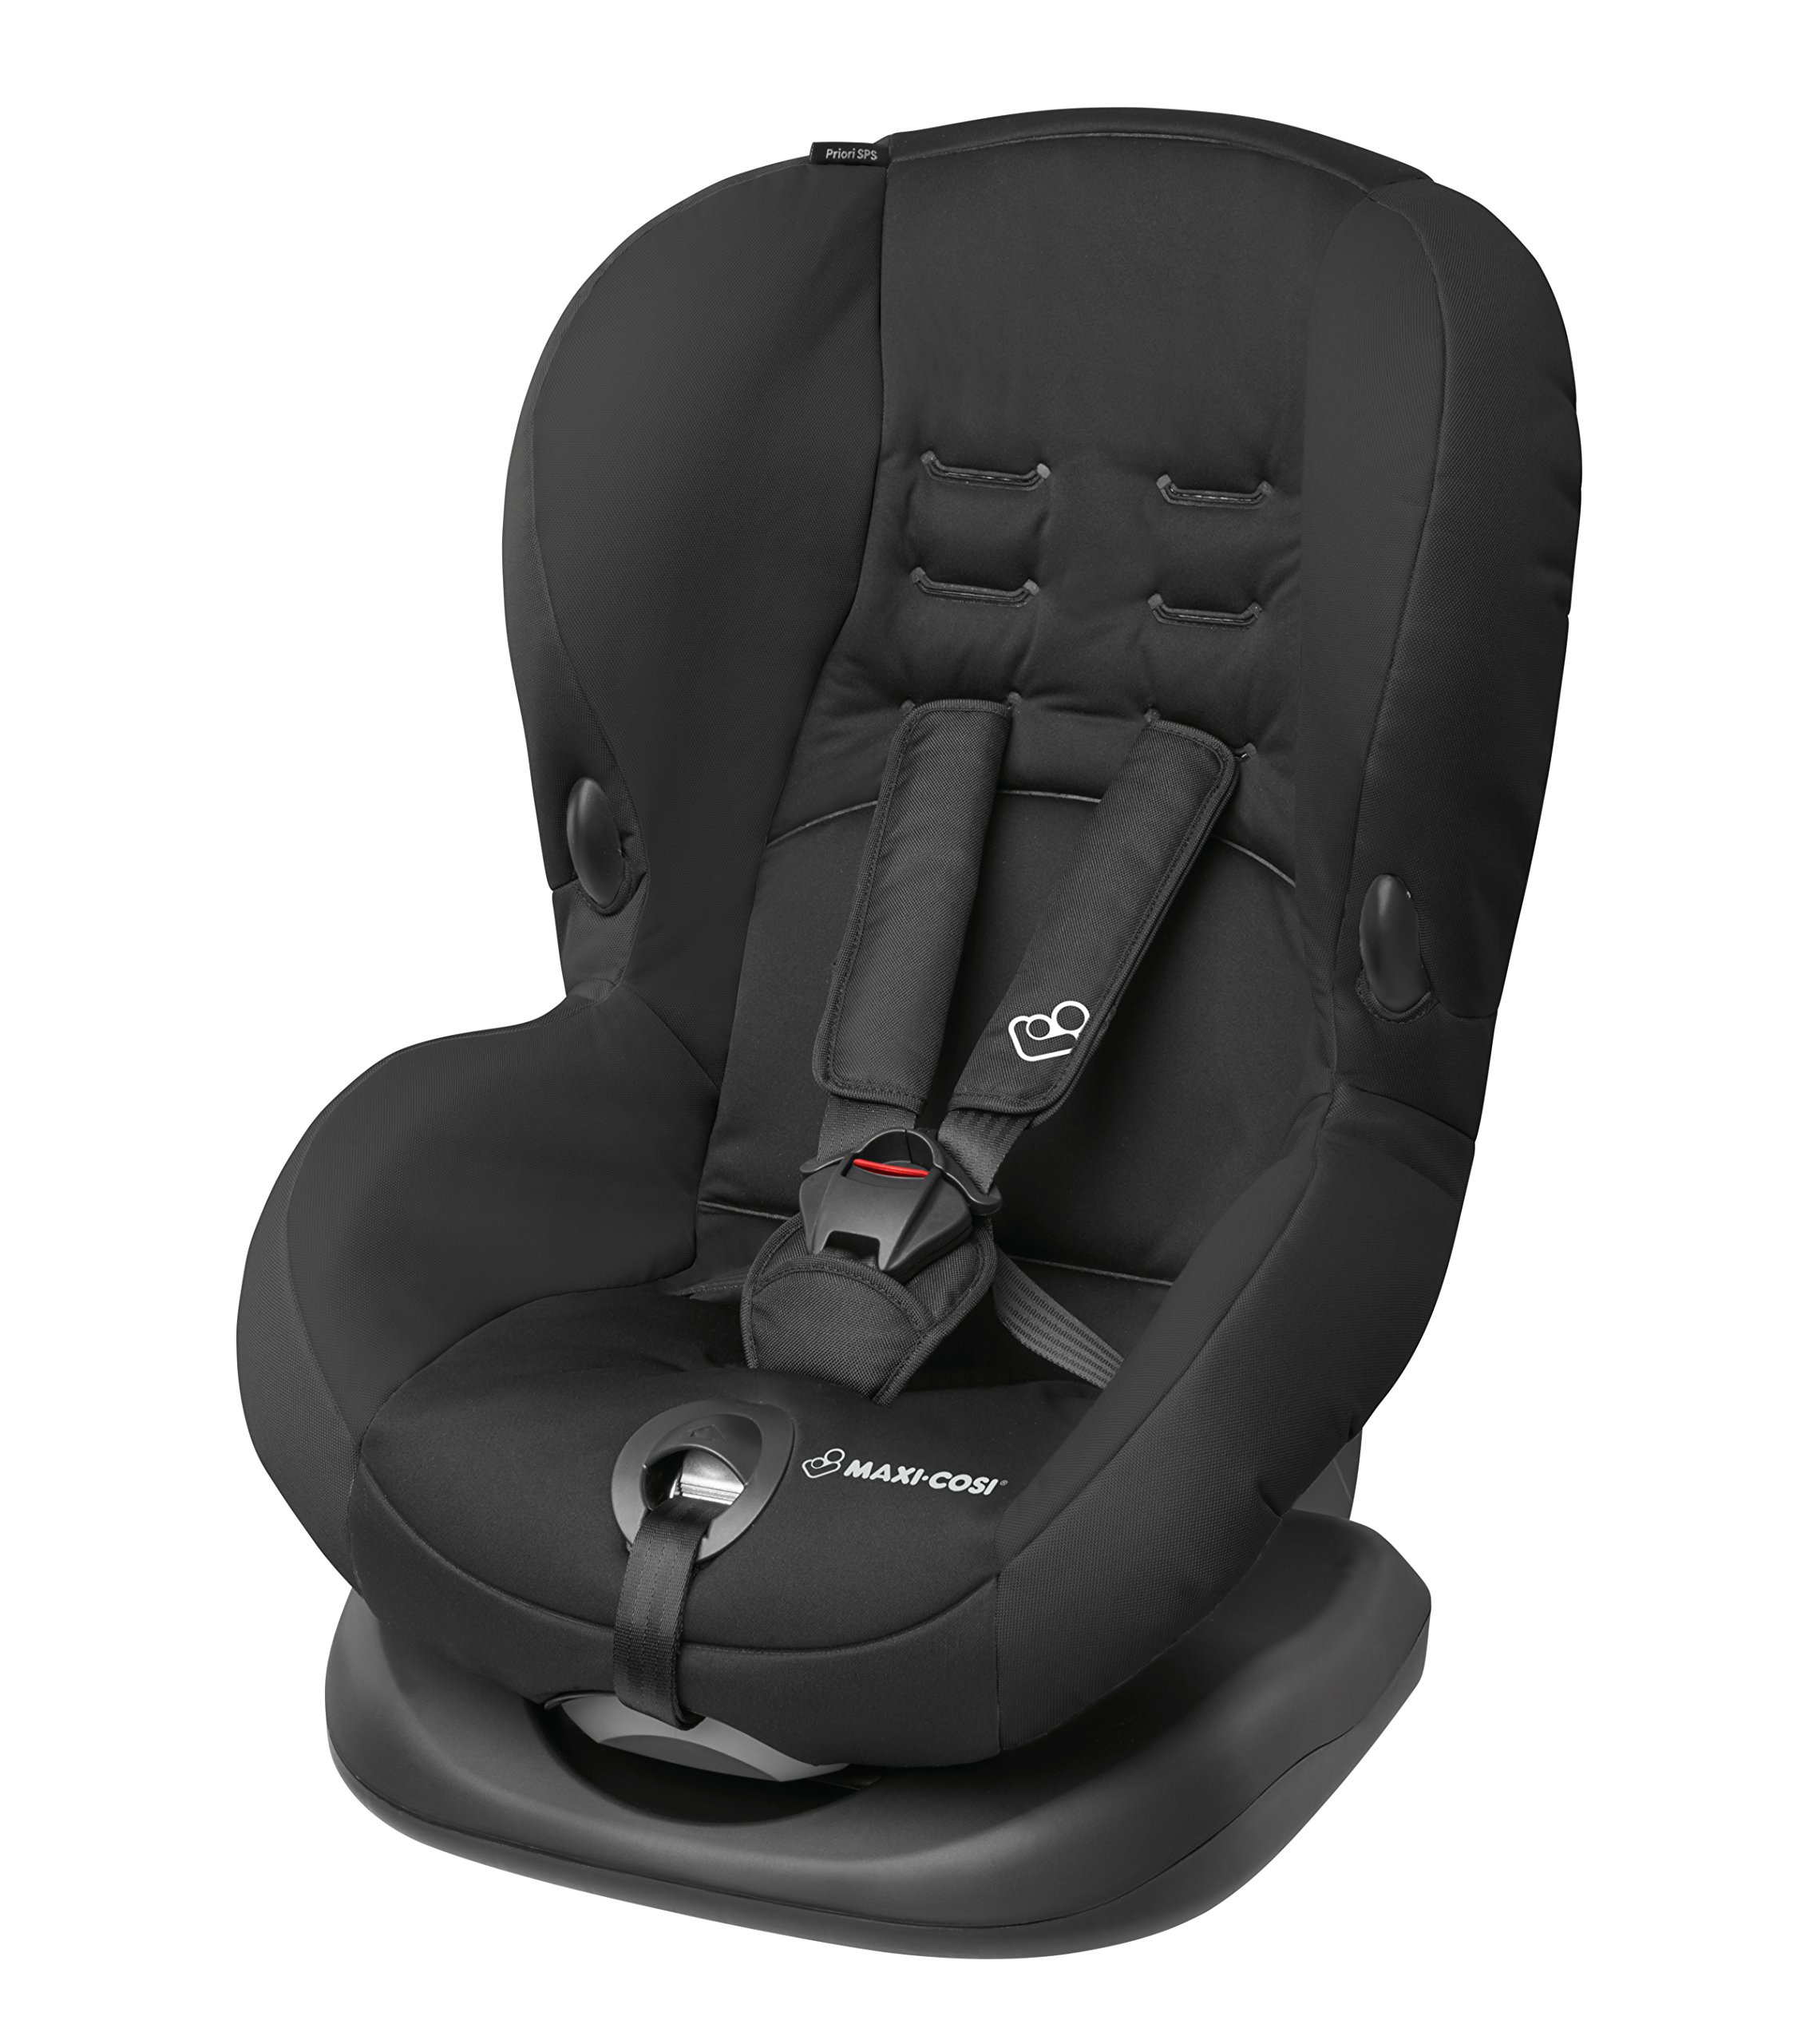 Maxi-Cosi Priori SPS Toddler Car Seat with Side Protection System, 9 Months - 4 Years, 9-18 kg, Slate Black Maxi-Cosi Forward facing group 1 car seat suitable for toddlers from 9 to 18 kg (approximately 9 months to 4 years old) Easy to install with regular 3-point safety belt Side protection system (offers optimal protection against side impact) 1